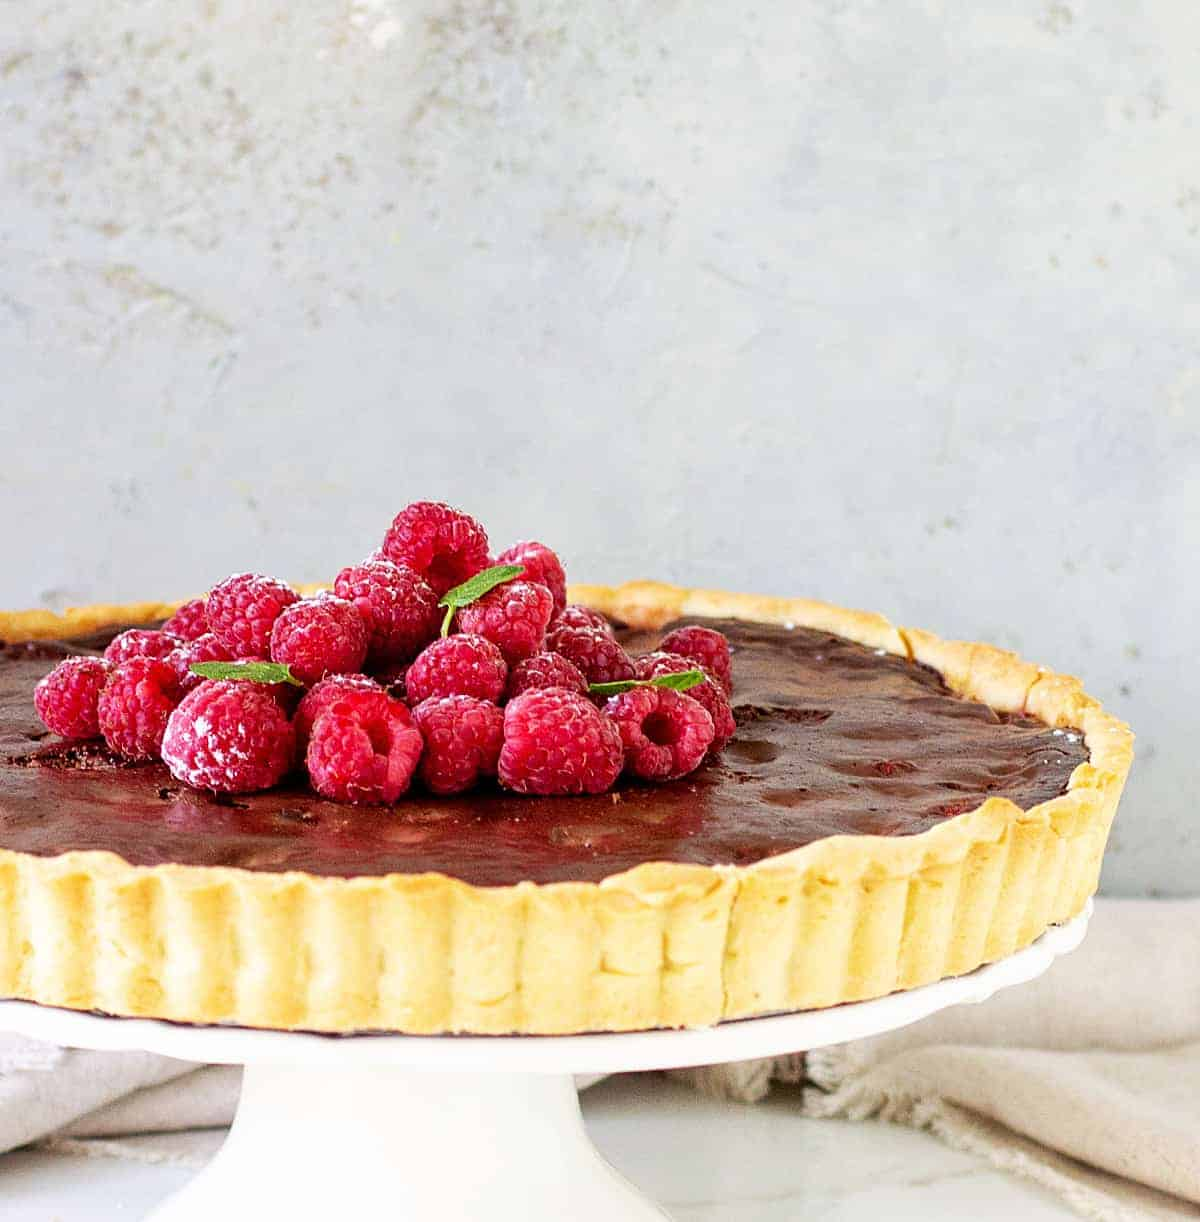 Partial image of chocolate tart on white cake stand, whole raspberries on top